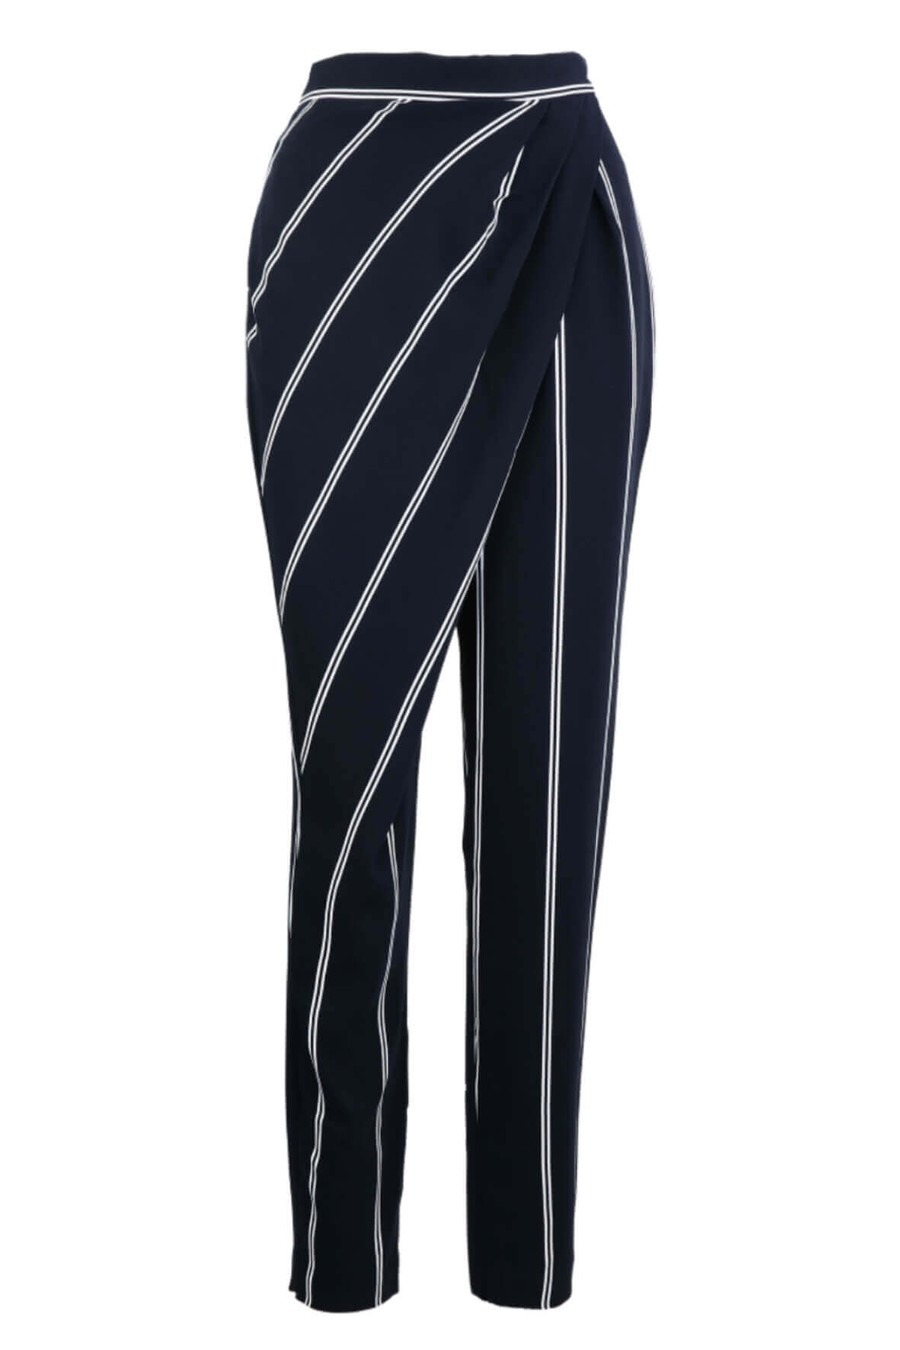 Style Theory_Crazy Rich Asians_finders-keepers-every-chance-pant-black-1